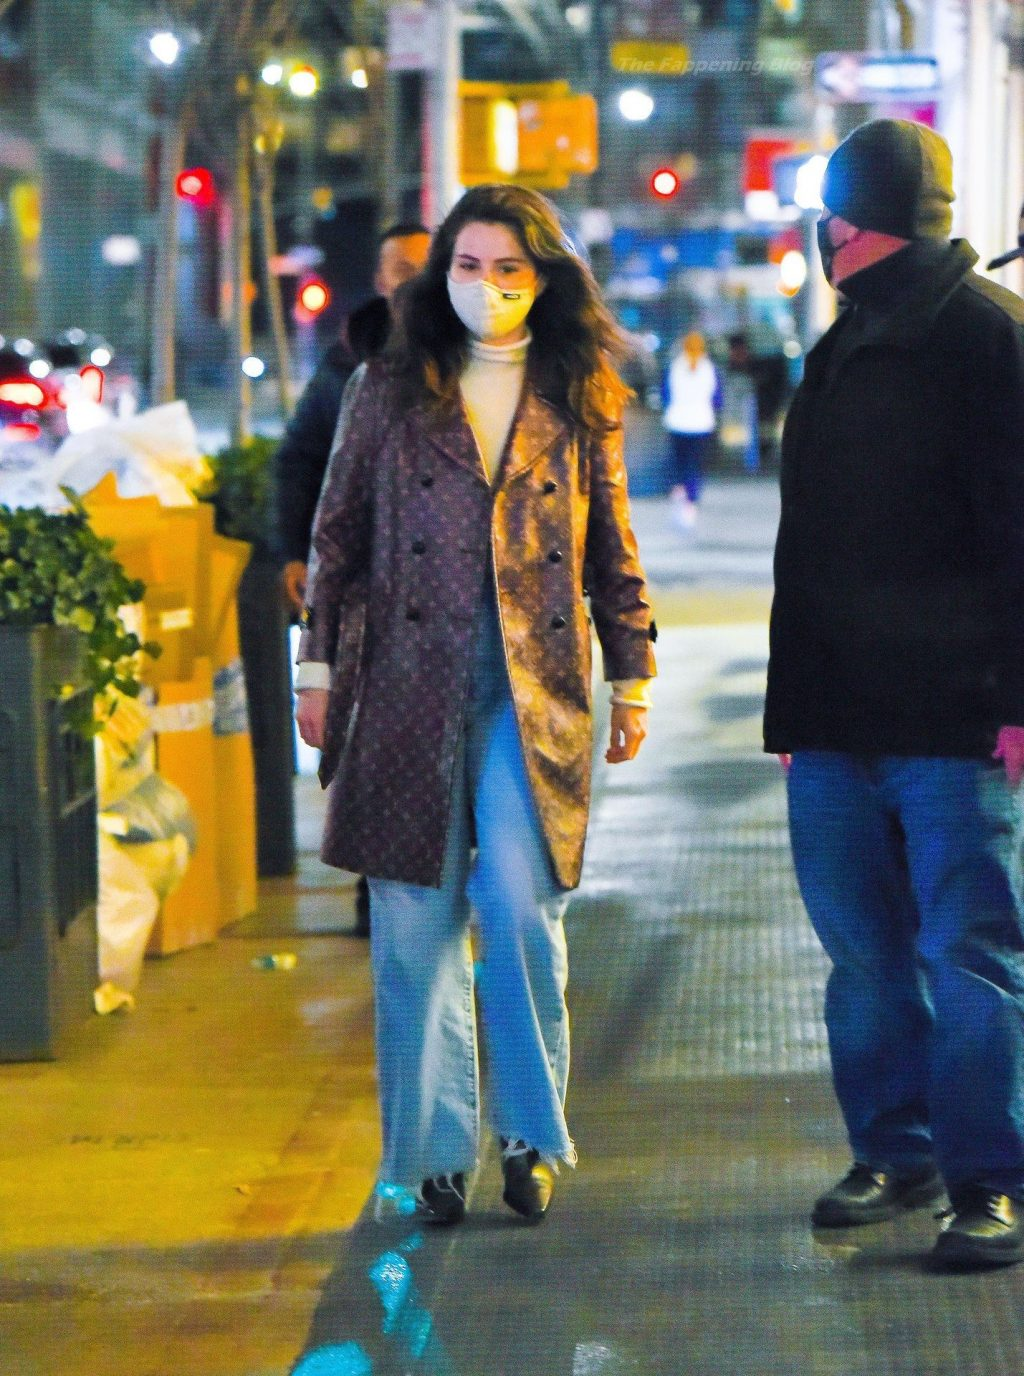 Selena Gomez is Pictured Shopping in NYC (22 Photos)